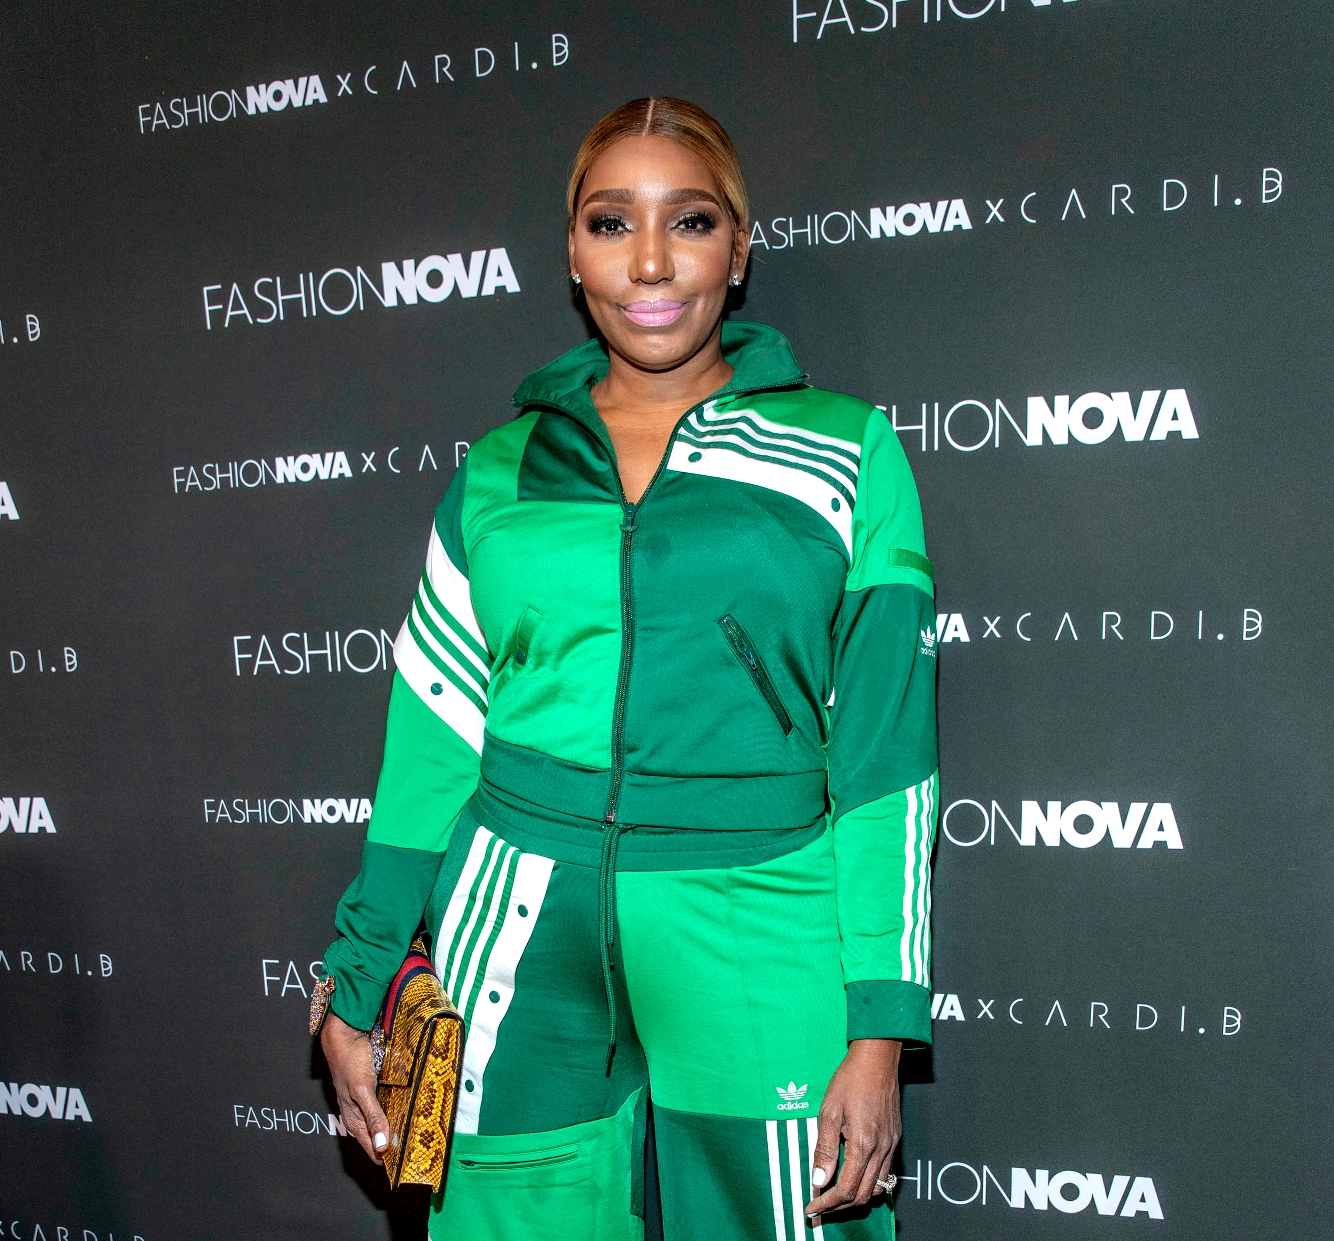 nene-leakes-combines-squats-and-shopping-and-fans-are-here-for-it